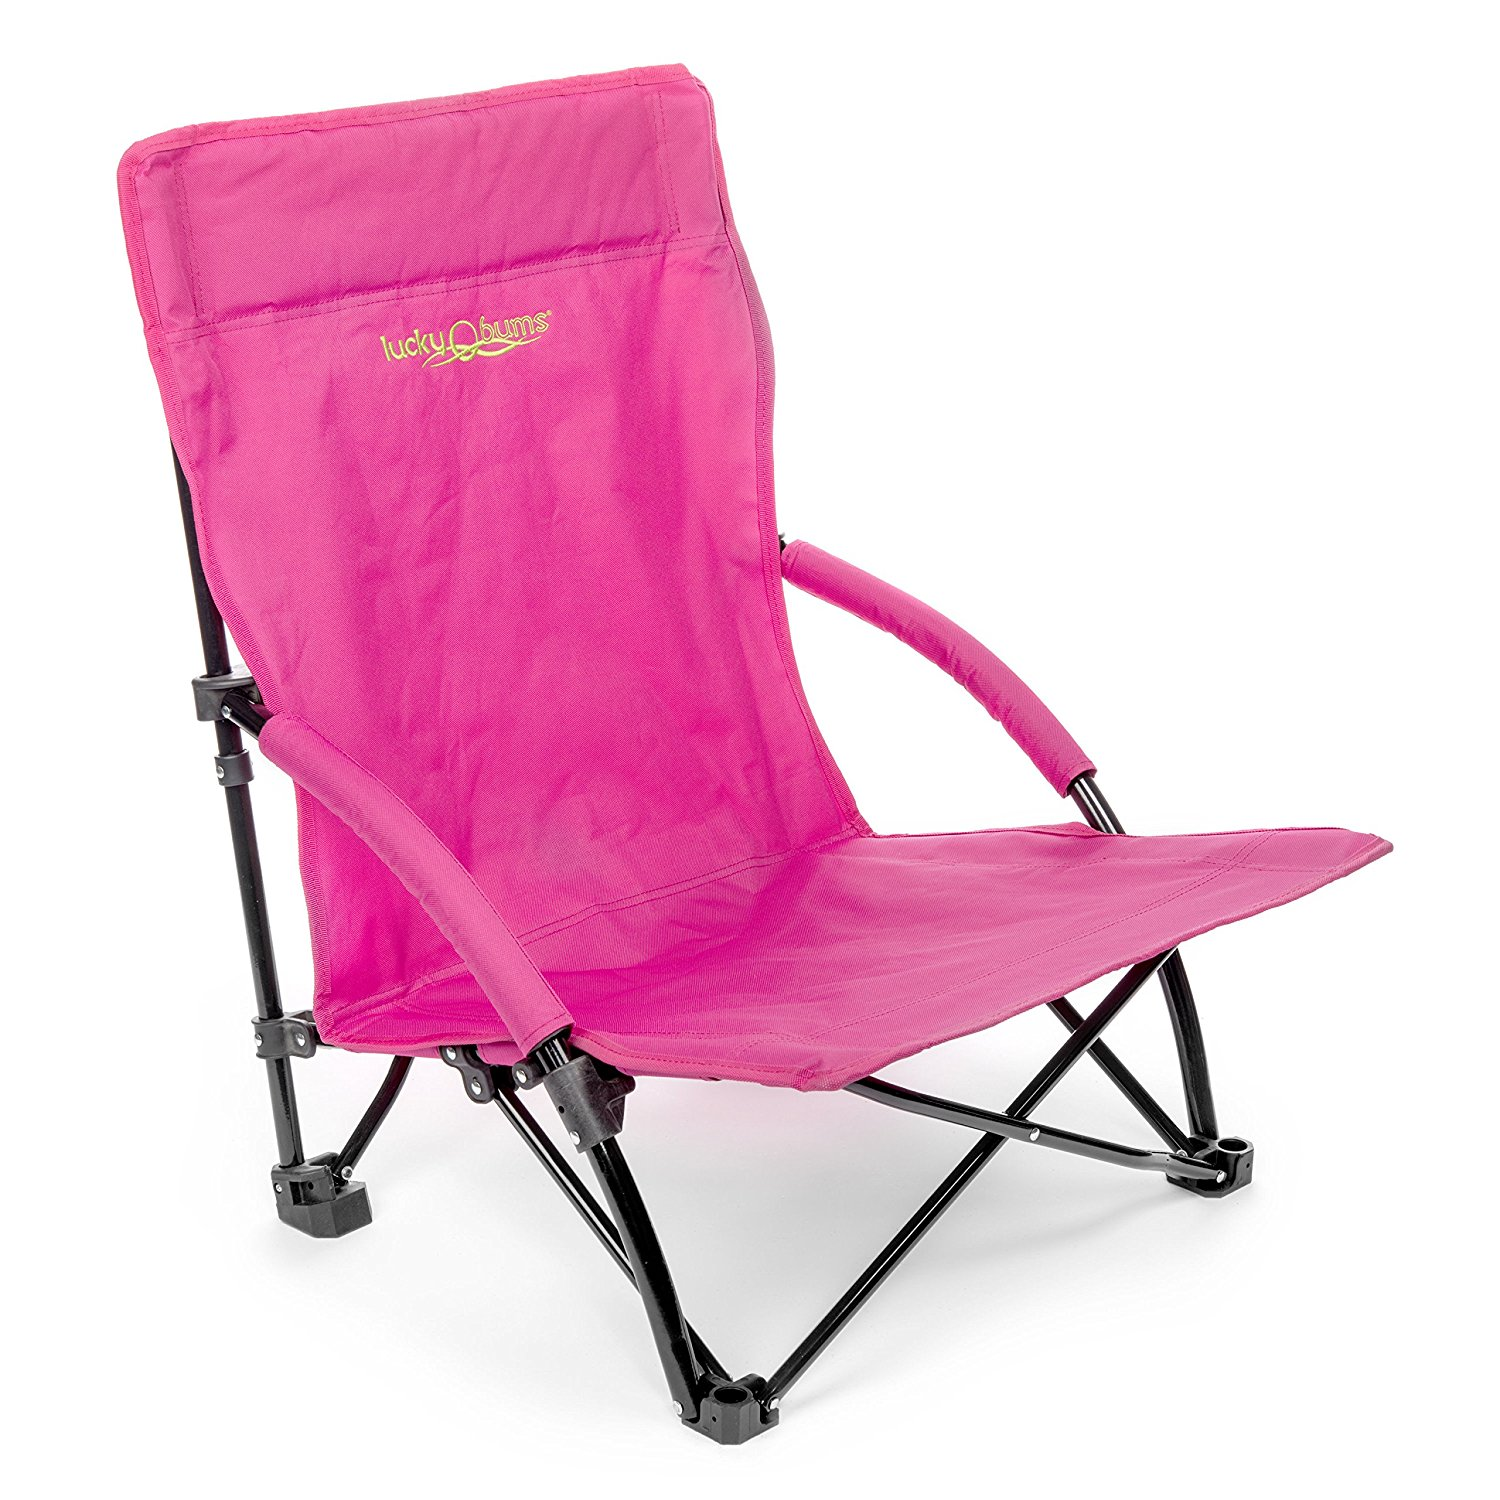 Sensational Cheap Sling Beach Chair Find Sling Beach Chair Deals On Gmtry Best Dining Table And Chair Ideas Images Gmtryco